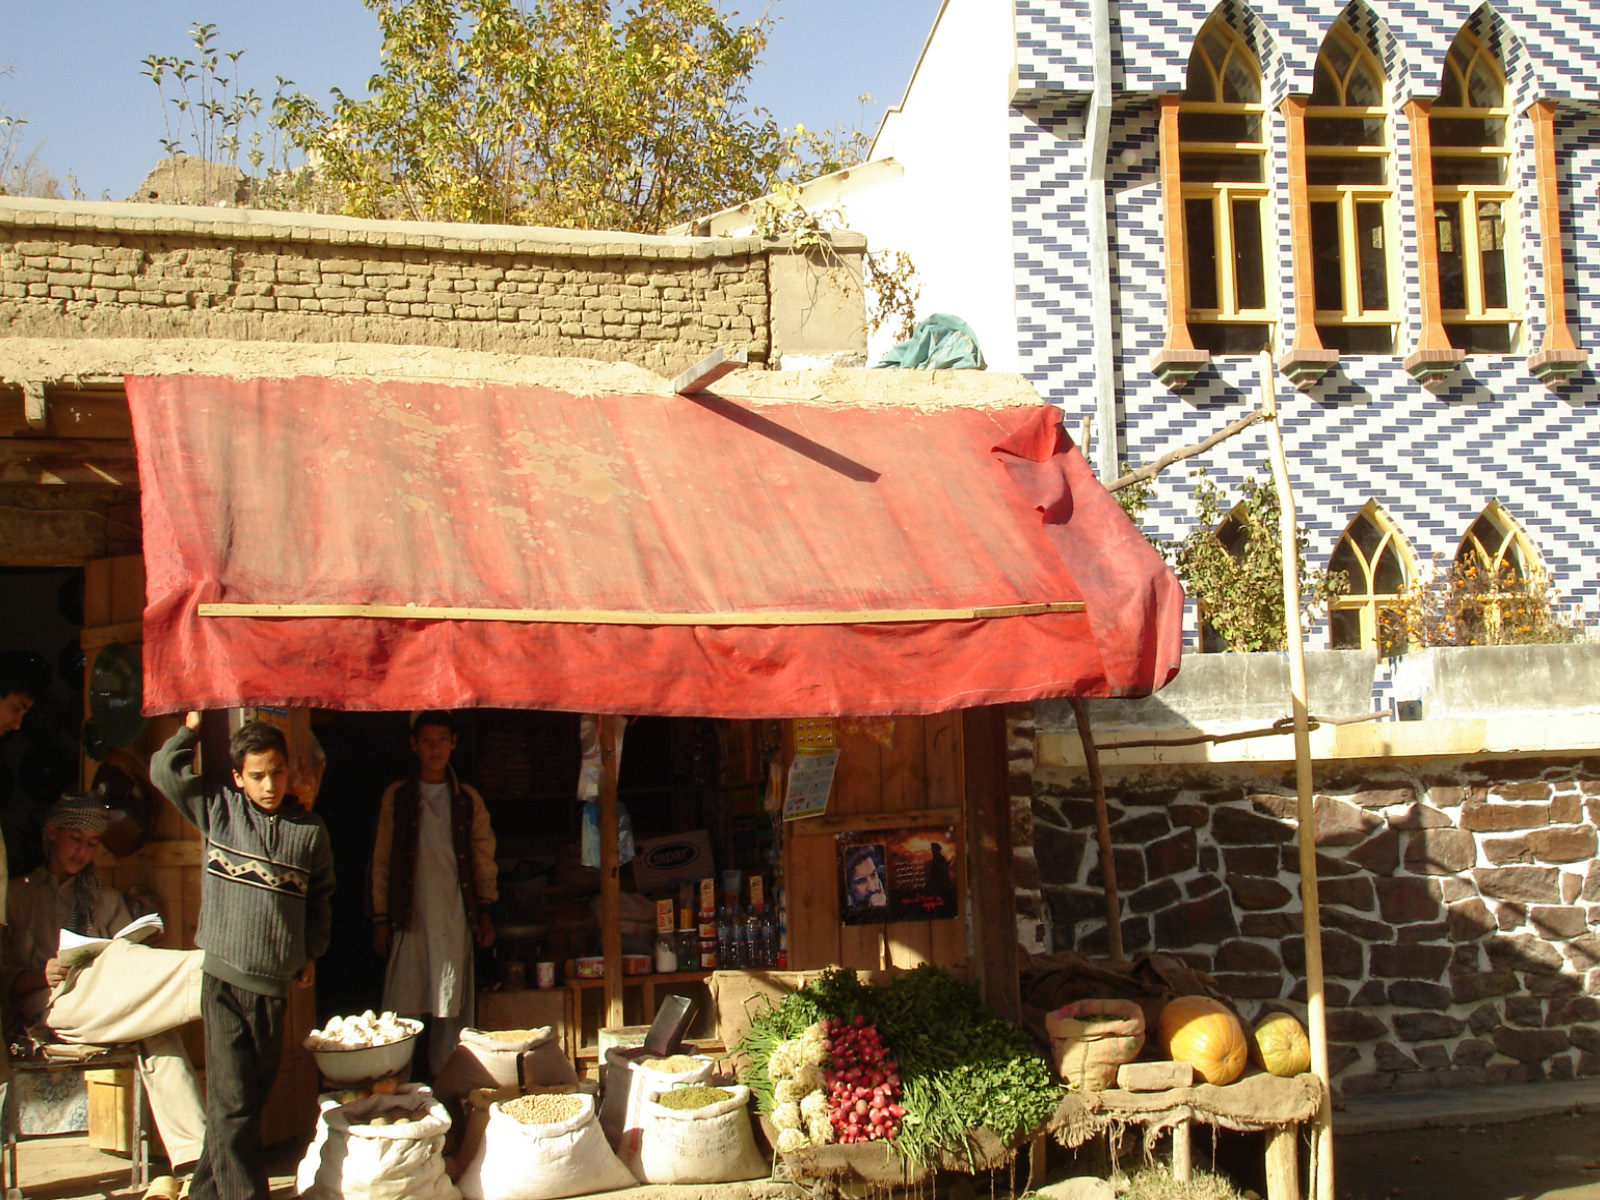 A food vendor in the newly rebuilt Istalif marketplace. Istalif Afghanistan